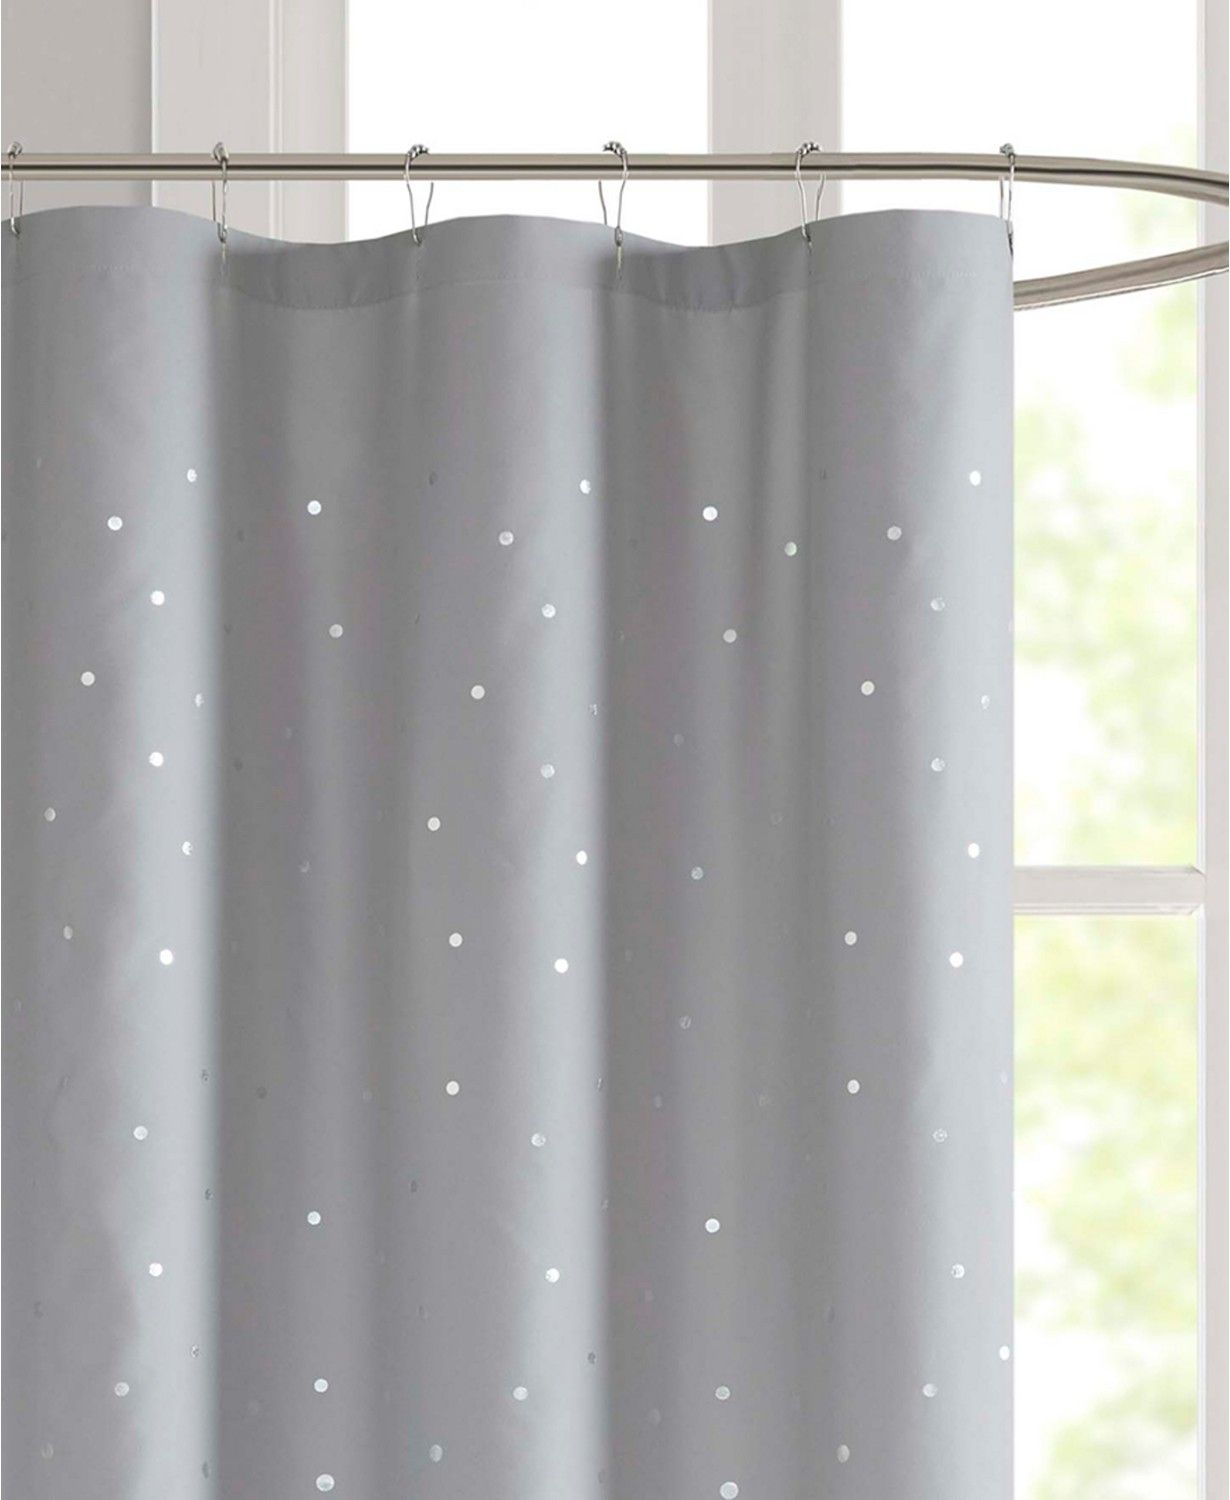 Magnified Jla Home Stella 70 X 72 Shower Curtain Image Jla